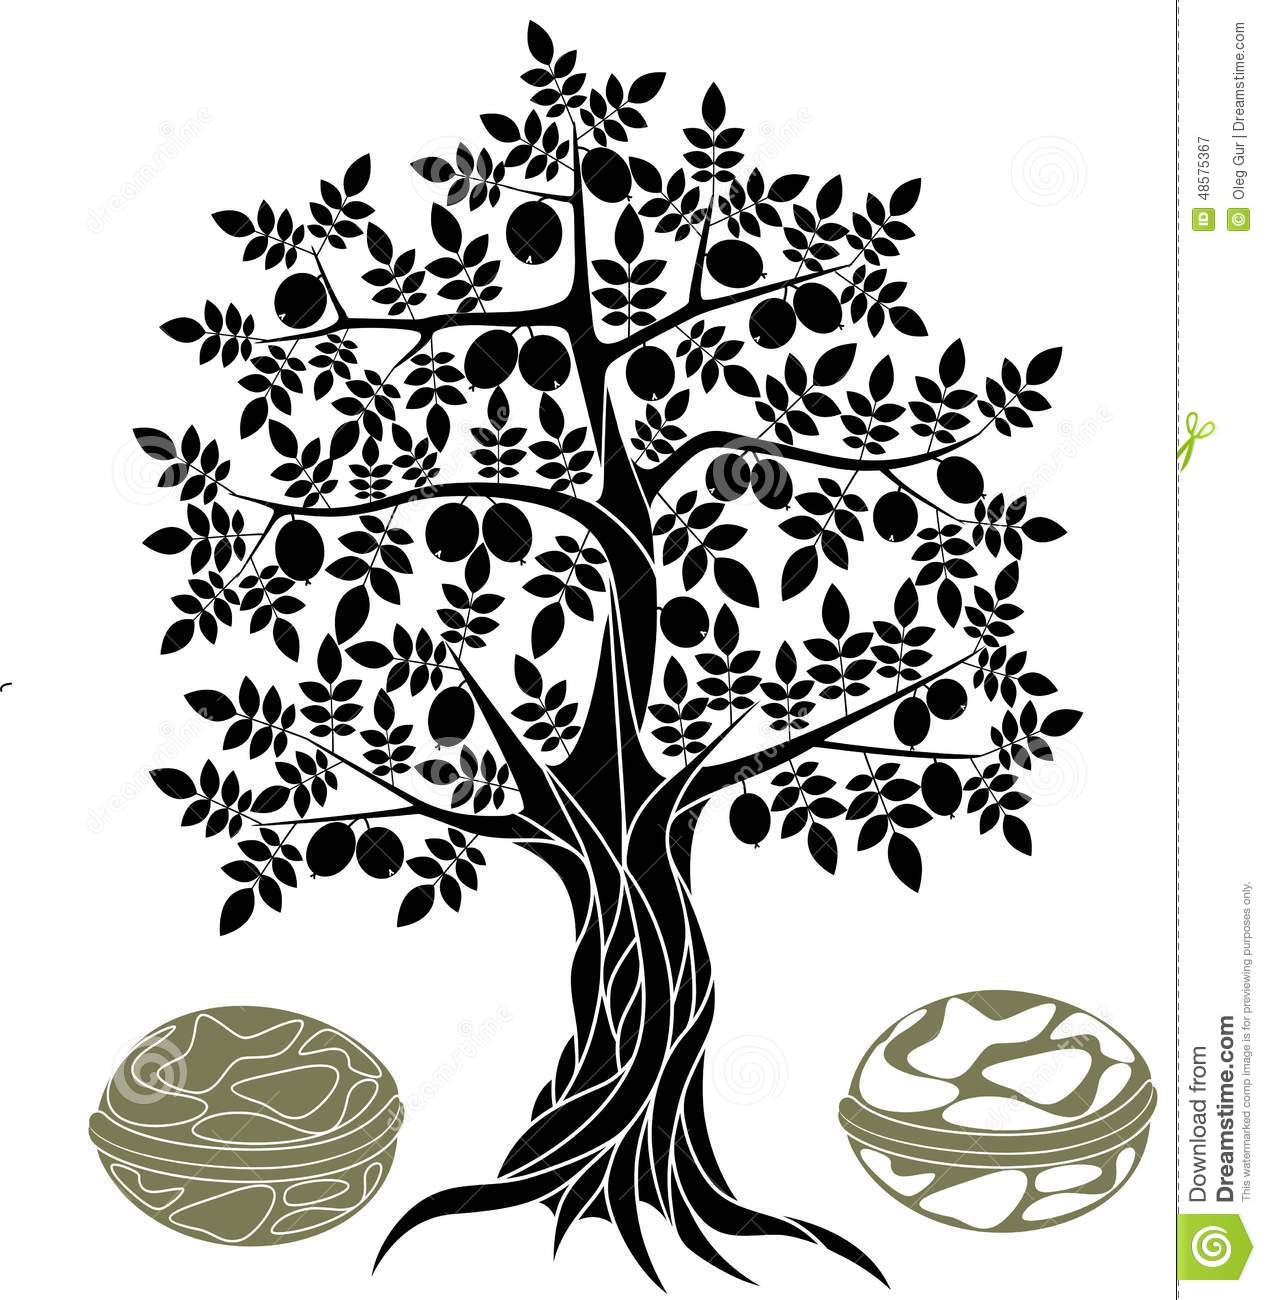 Walnut tree clipart clipart.